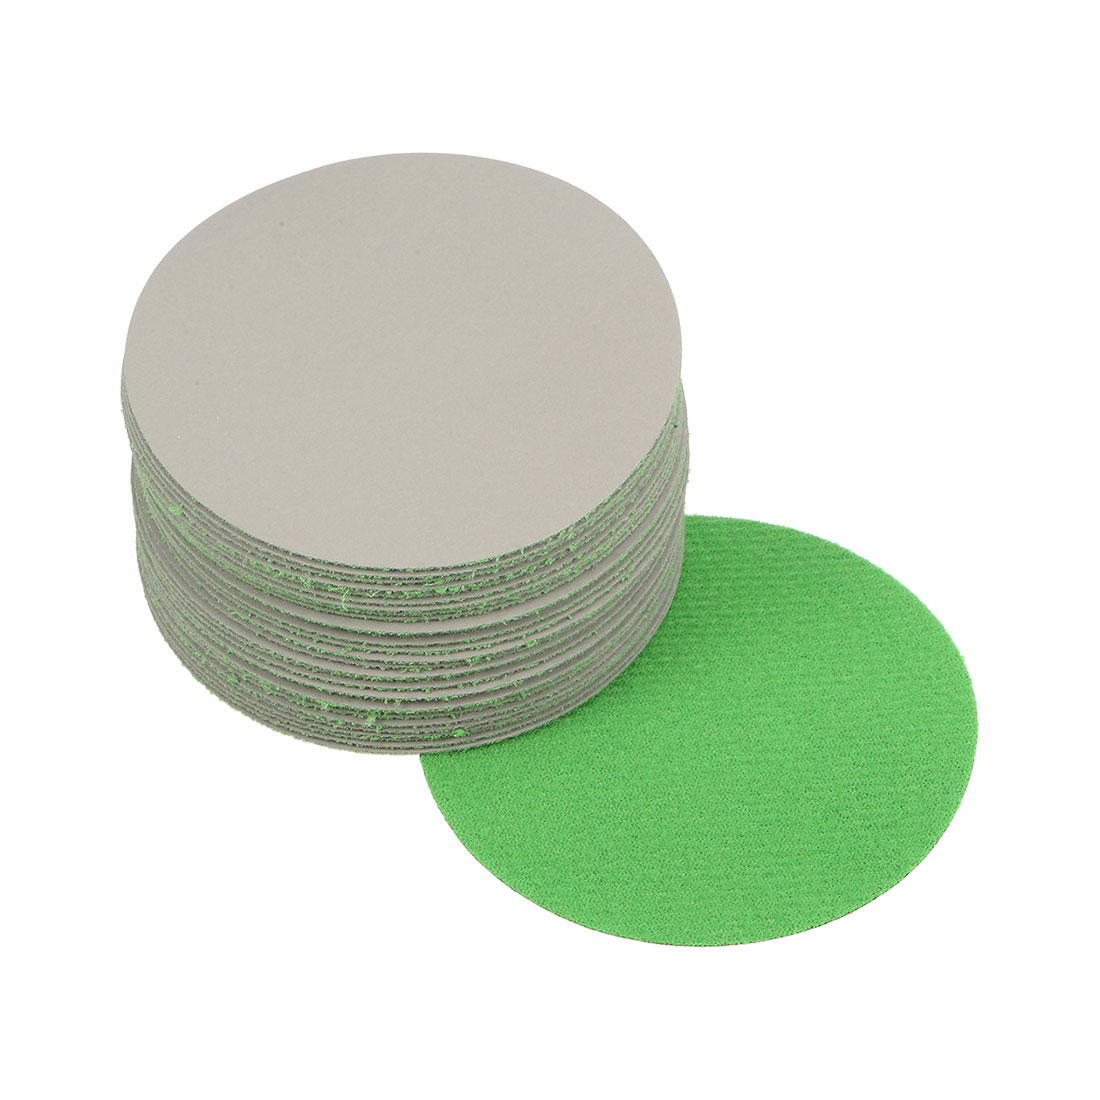 3 inch Wet Dry Discs 3000 Grit Hook and Loop Sanding Disc Silicon Carbide 30pcs